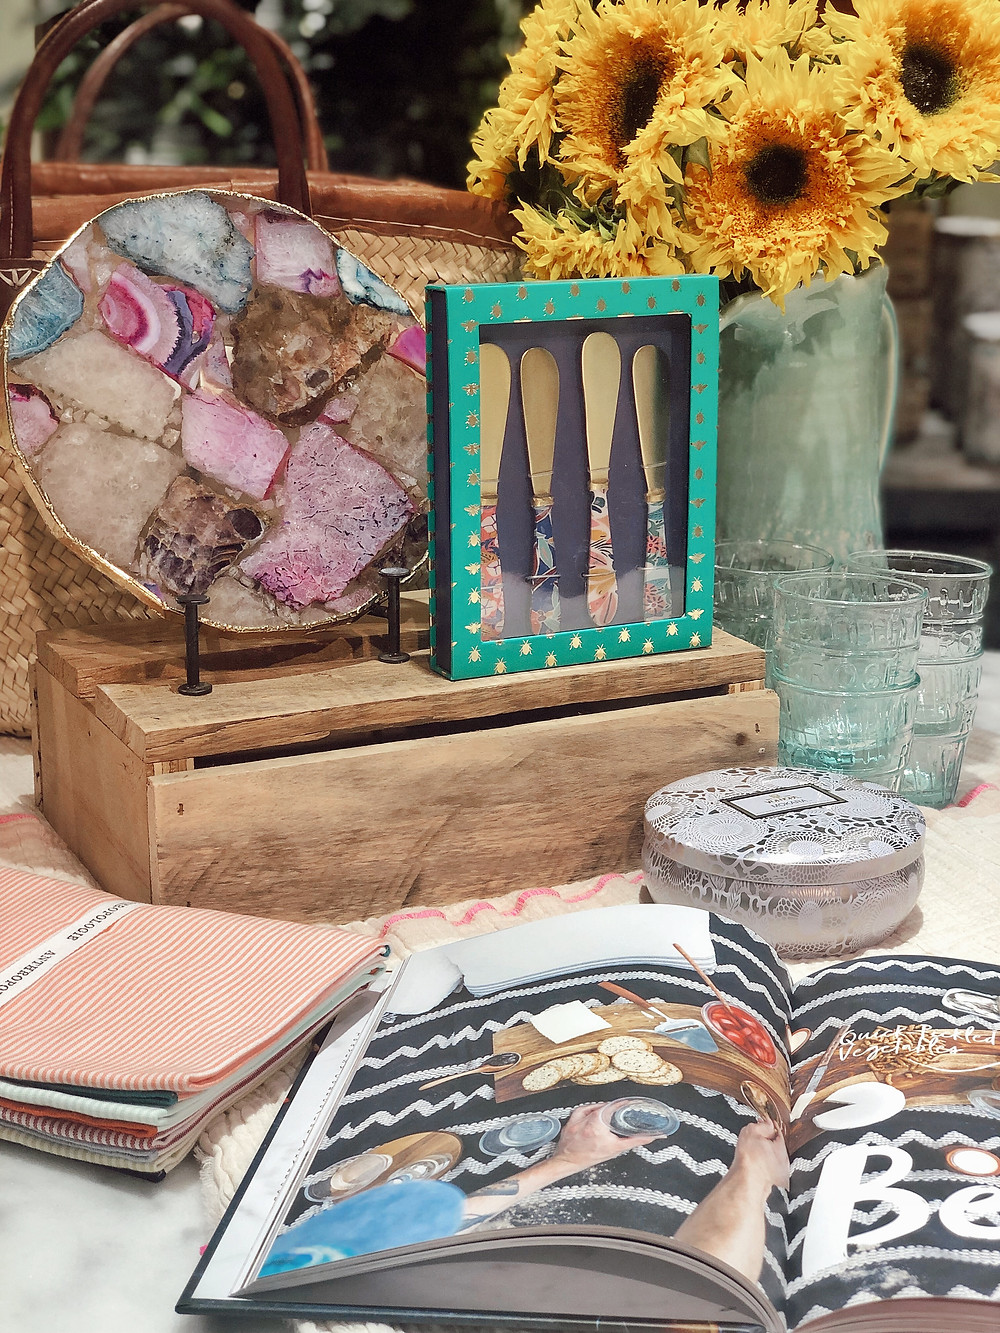 Summer entertaining essentials from Anthropologie, Agate platter, cheese knives, rosé hand-blown glasses